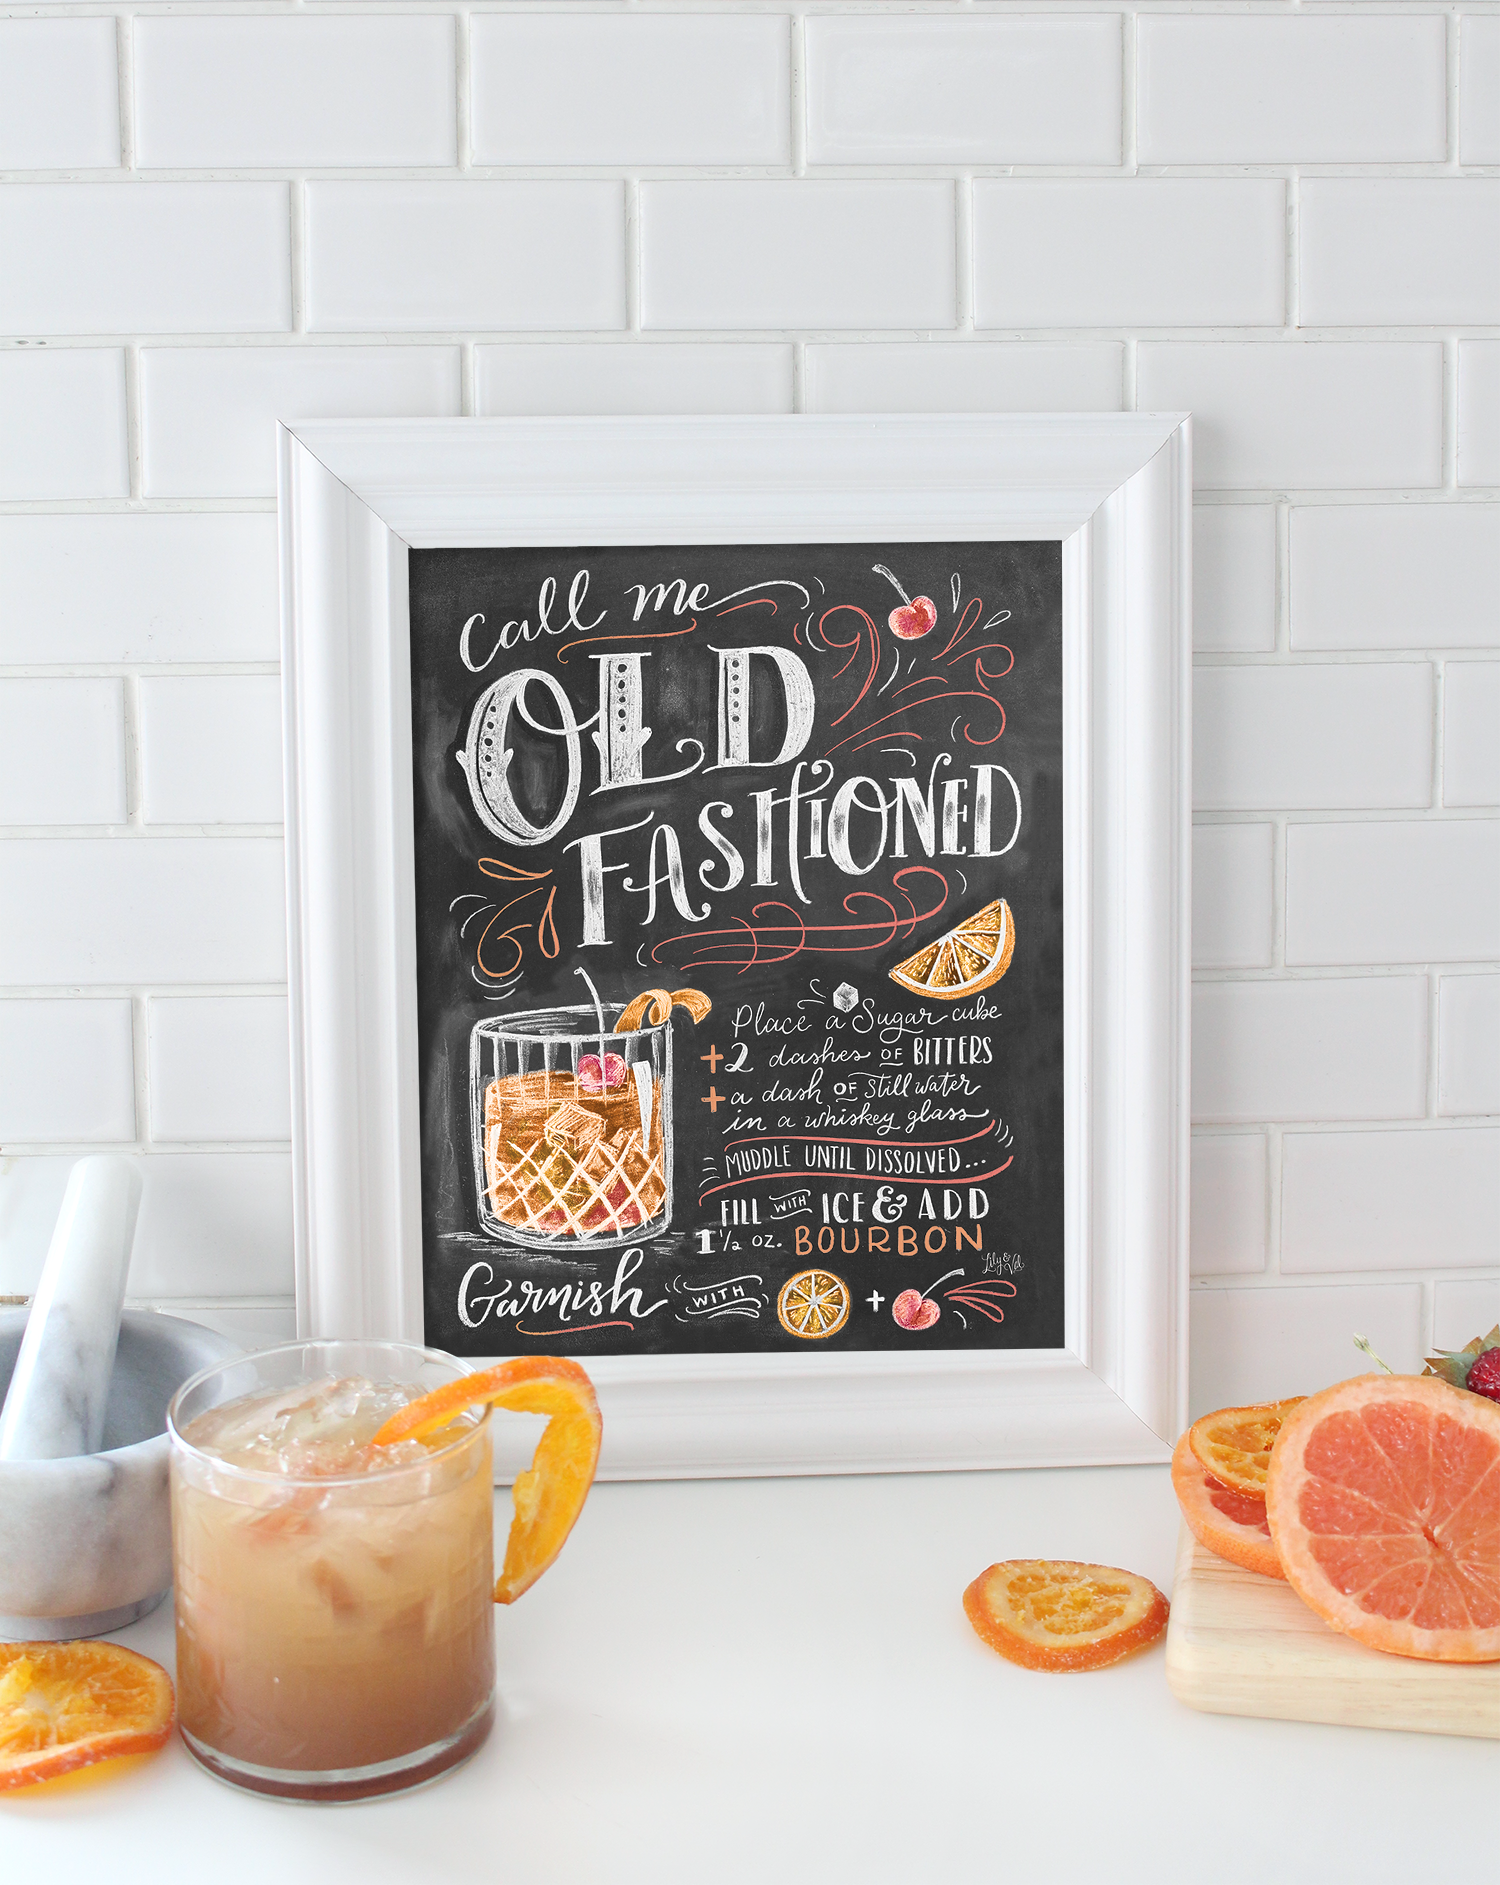 Call me Old Fashioned -a cute chalk art illustrated cocktail print to spruce up your summer bar carts and parties